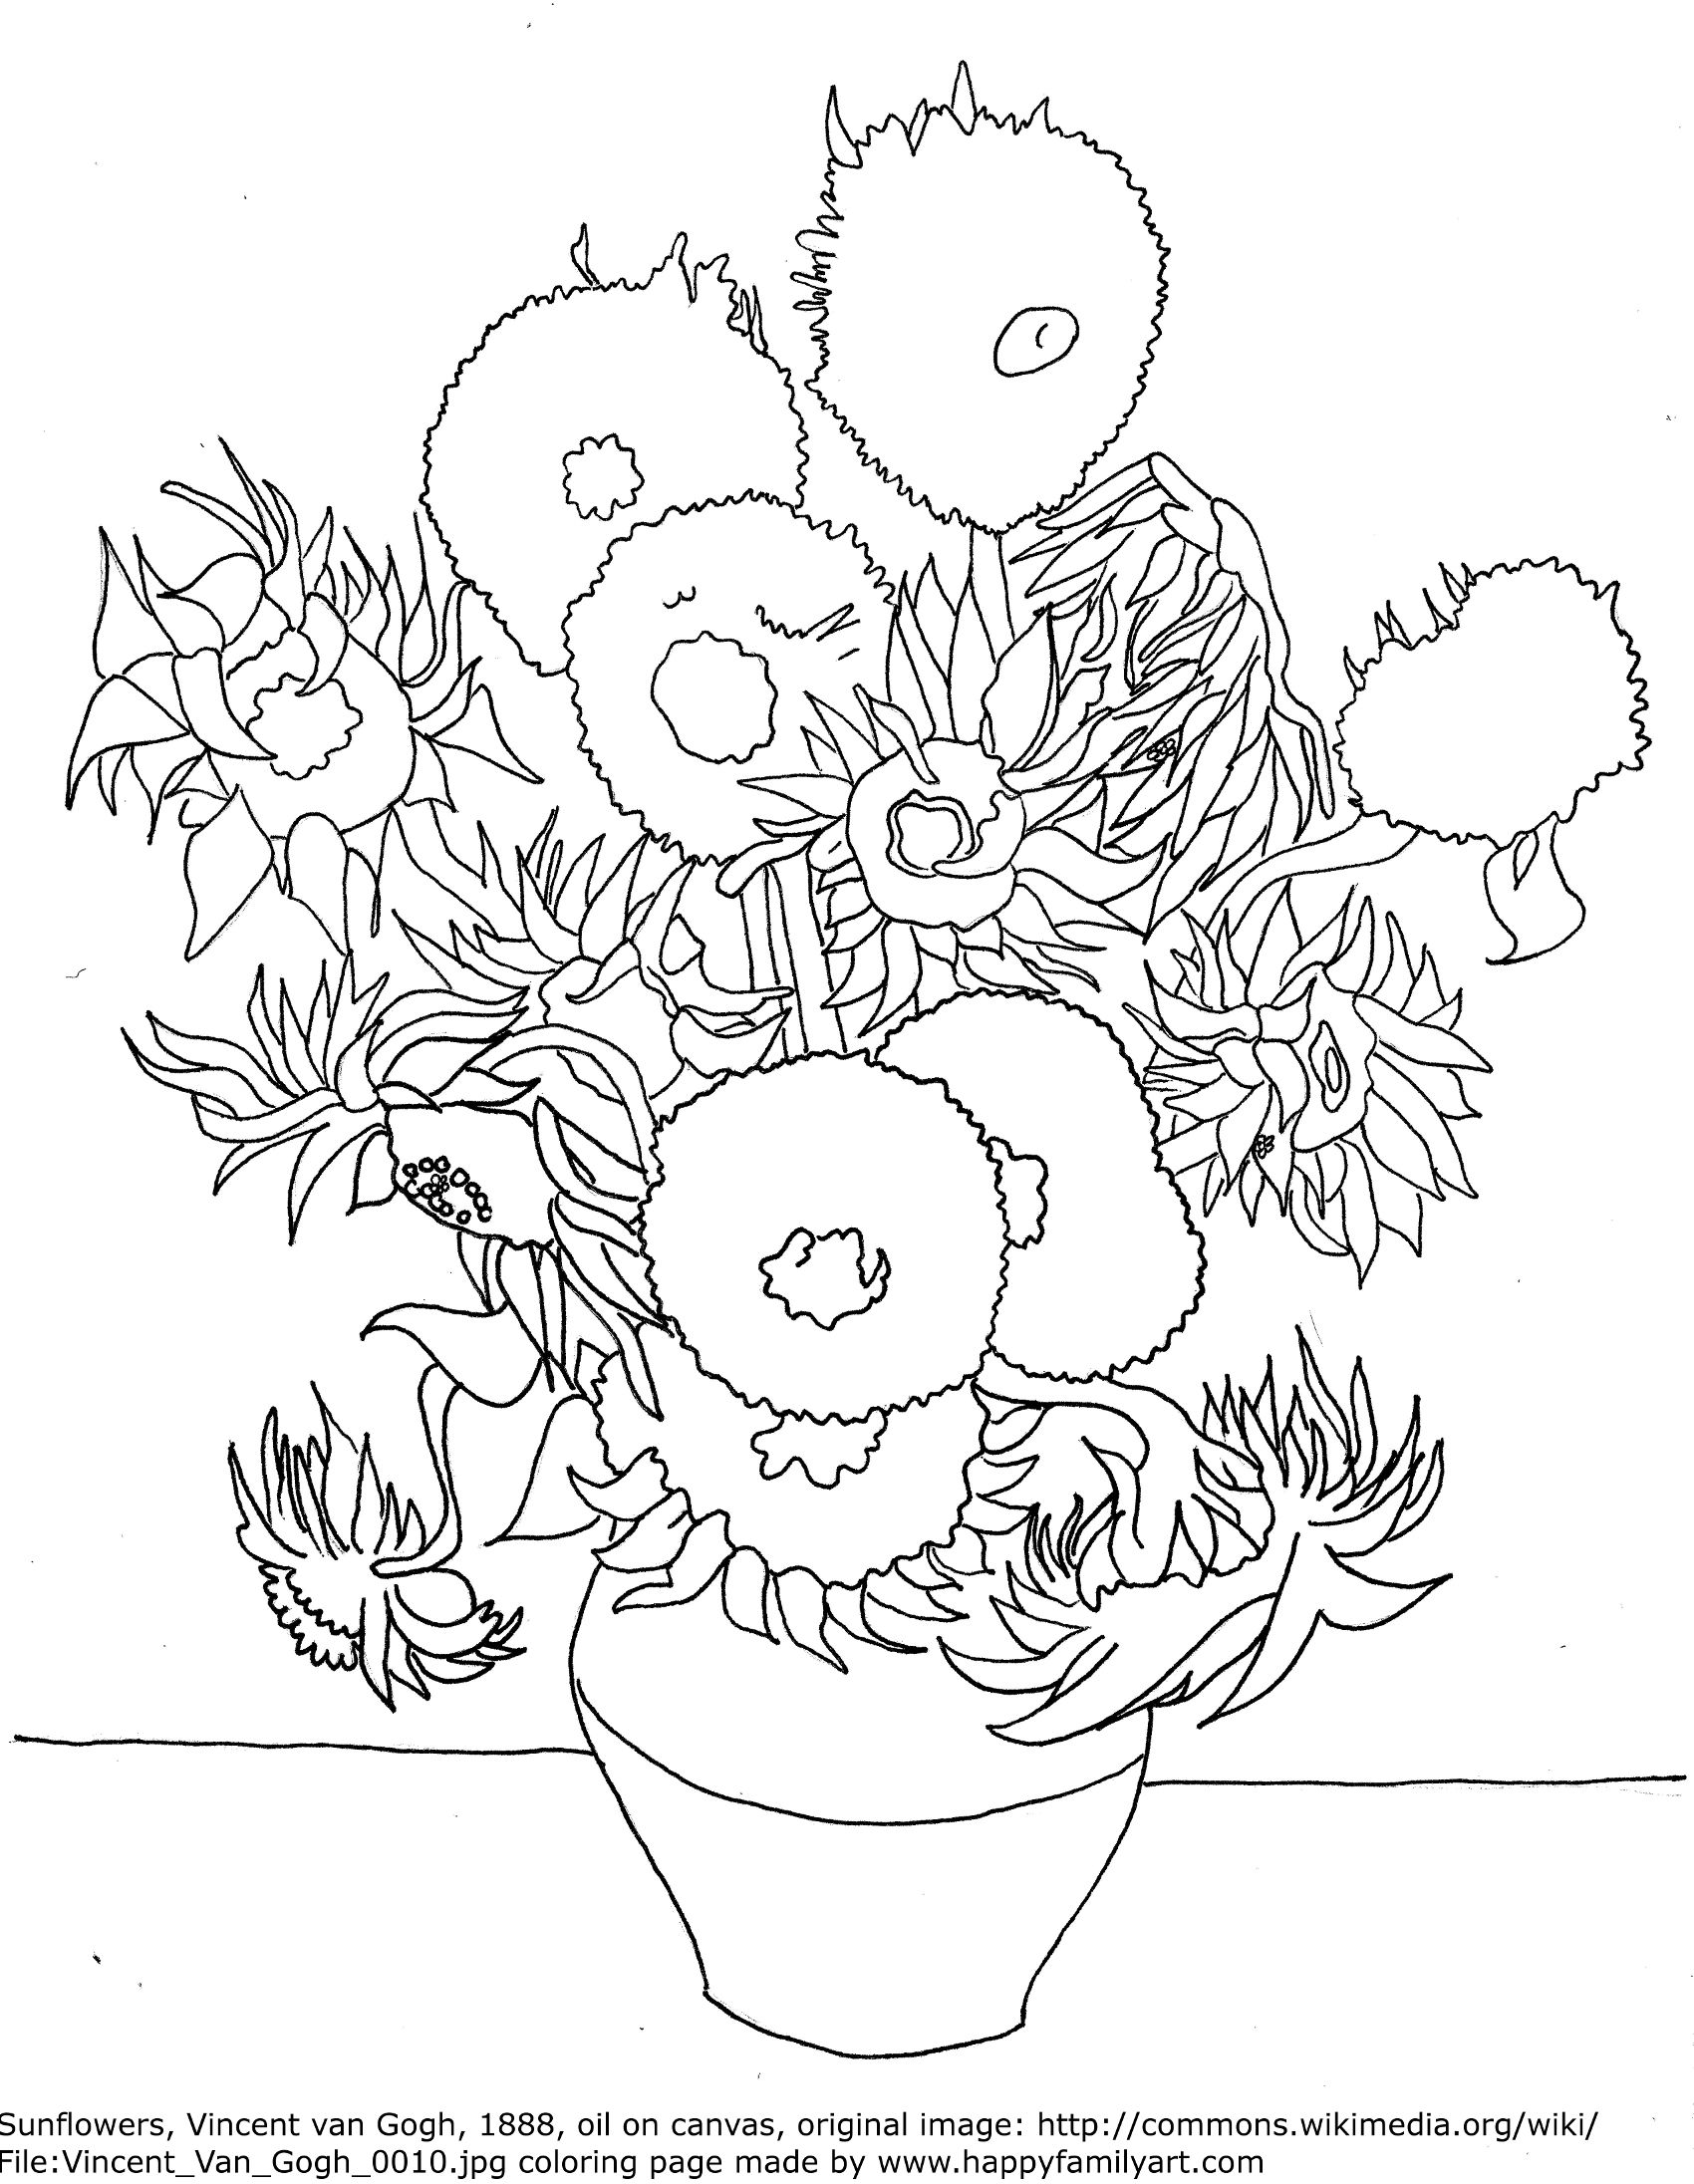 Uncategorized Vincent Van Gogh Coloring Pages van gogh famous paintings coloring pages art and artists vincent sunflowers page sketch page